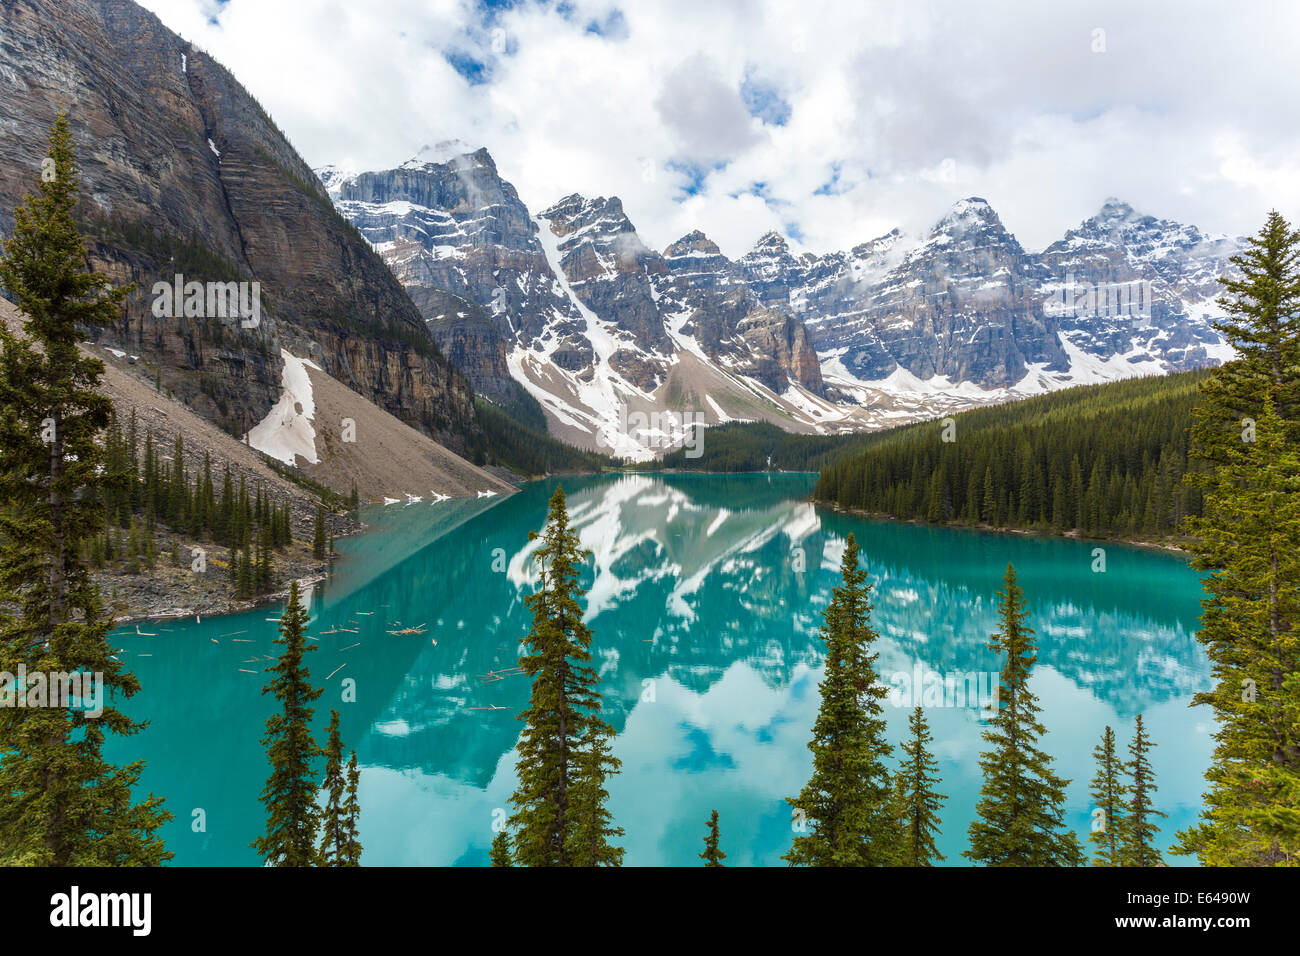 Moraine Lake & The Valley of the Ten Peaks, Banff National Park, Alberta, Canada - Stock Image